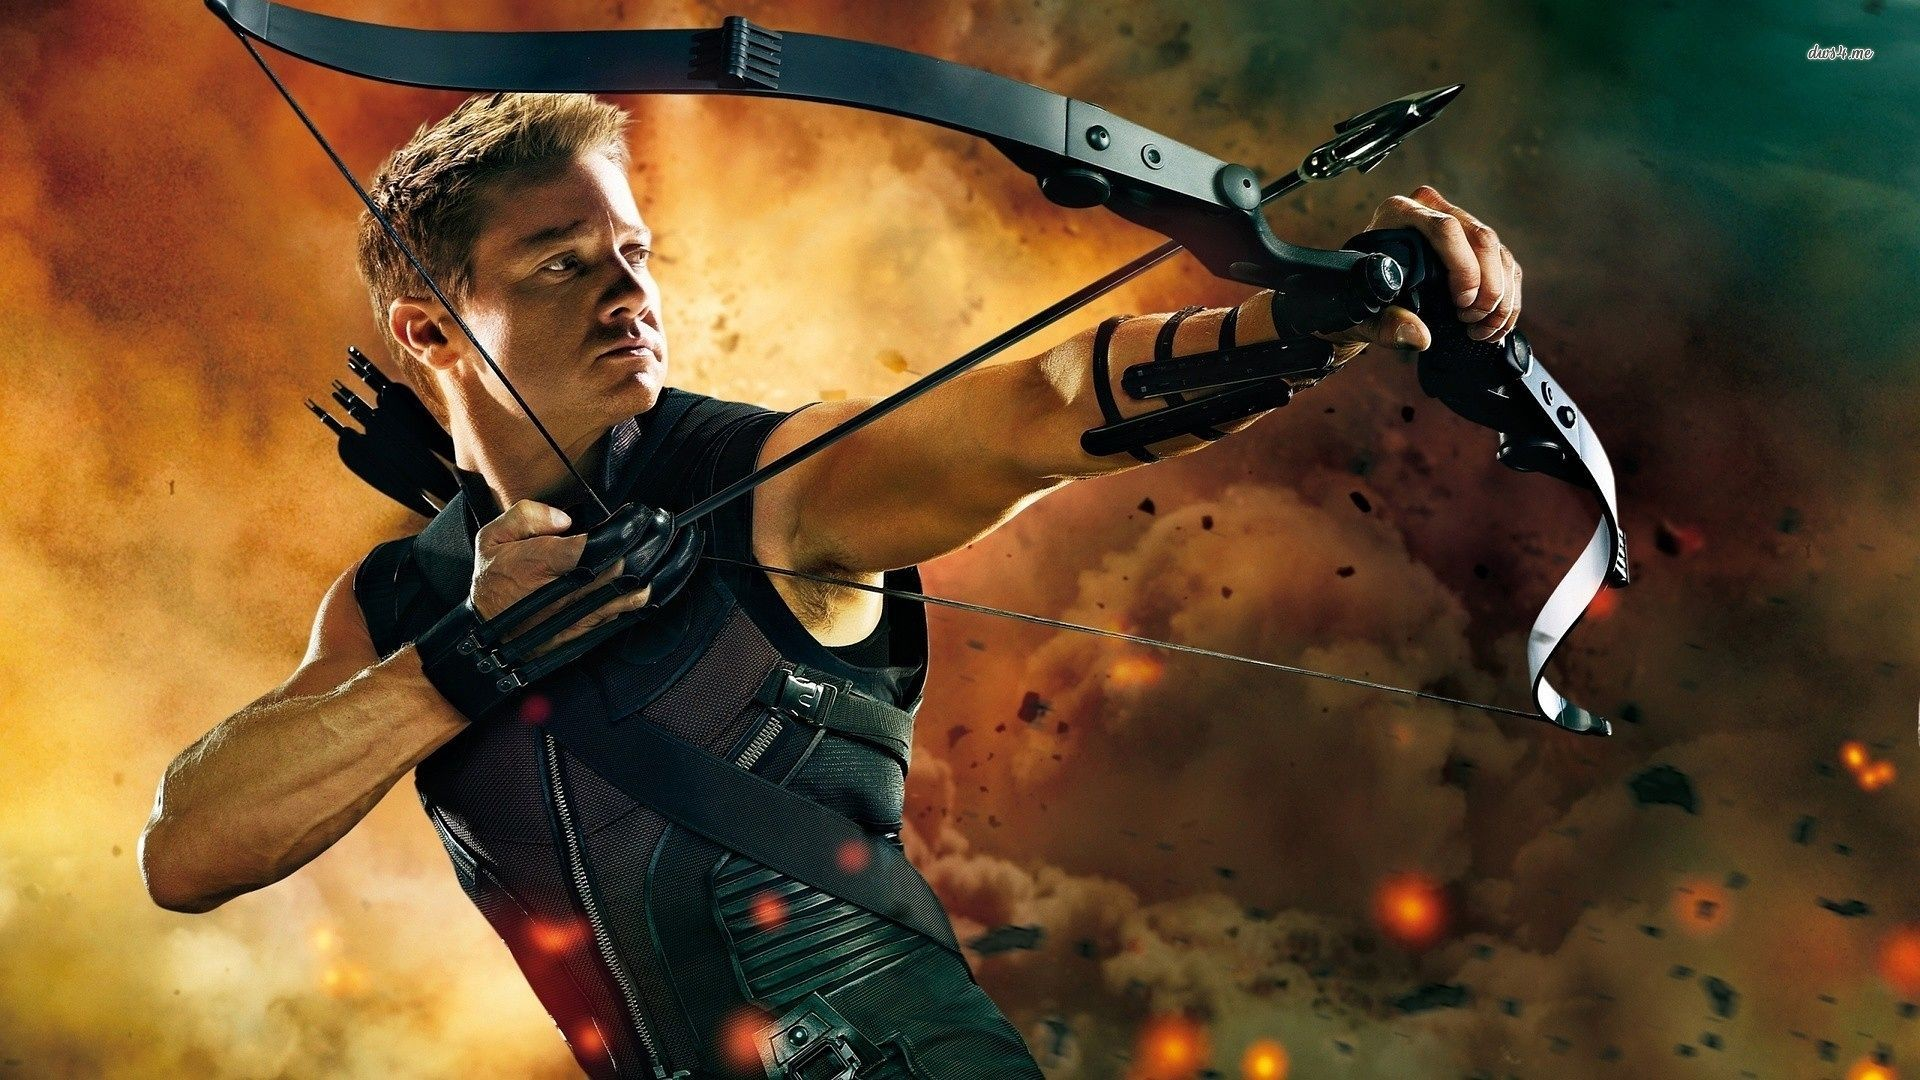 should-hawkeye-be-on-television-376685